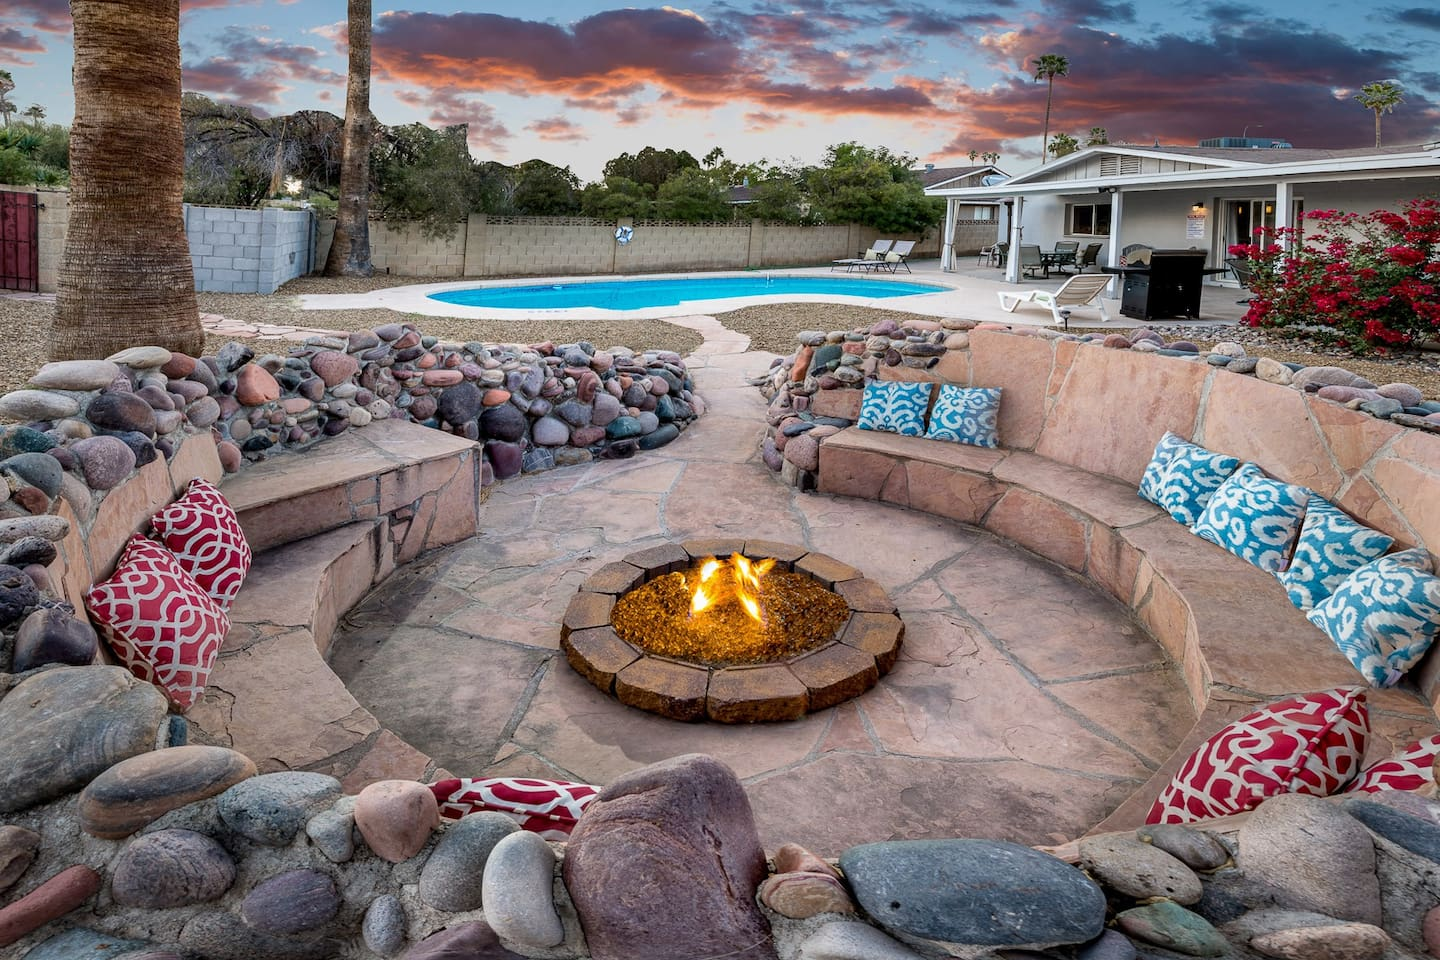 Hang out poolside as the sun goes down next to the glowing fire pit.